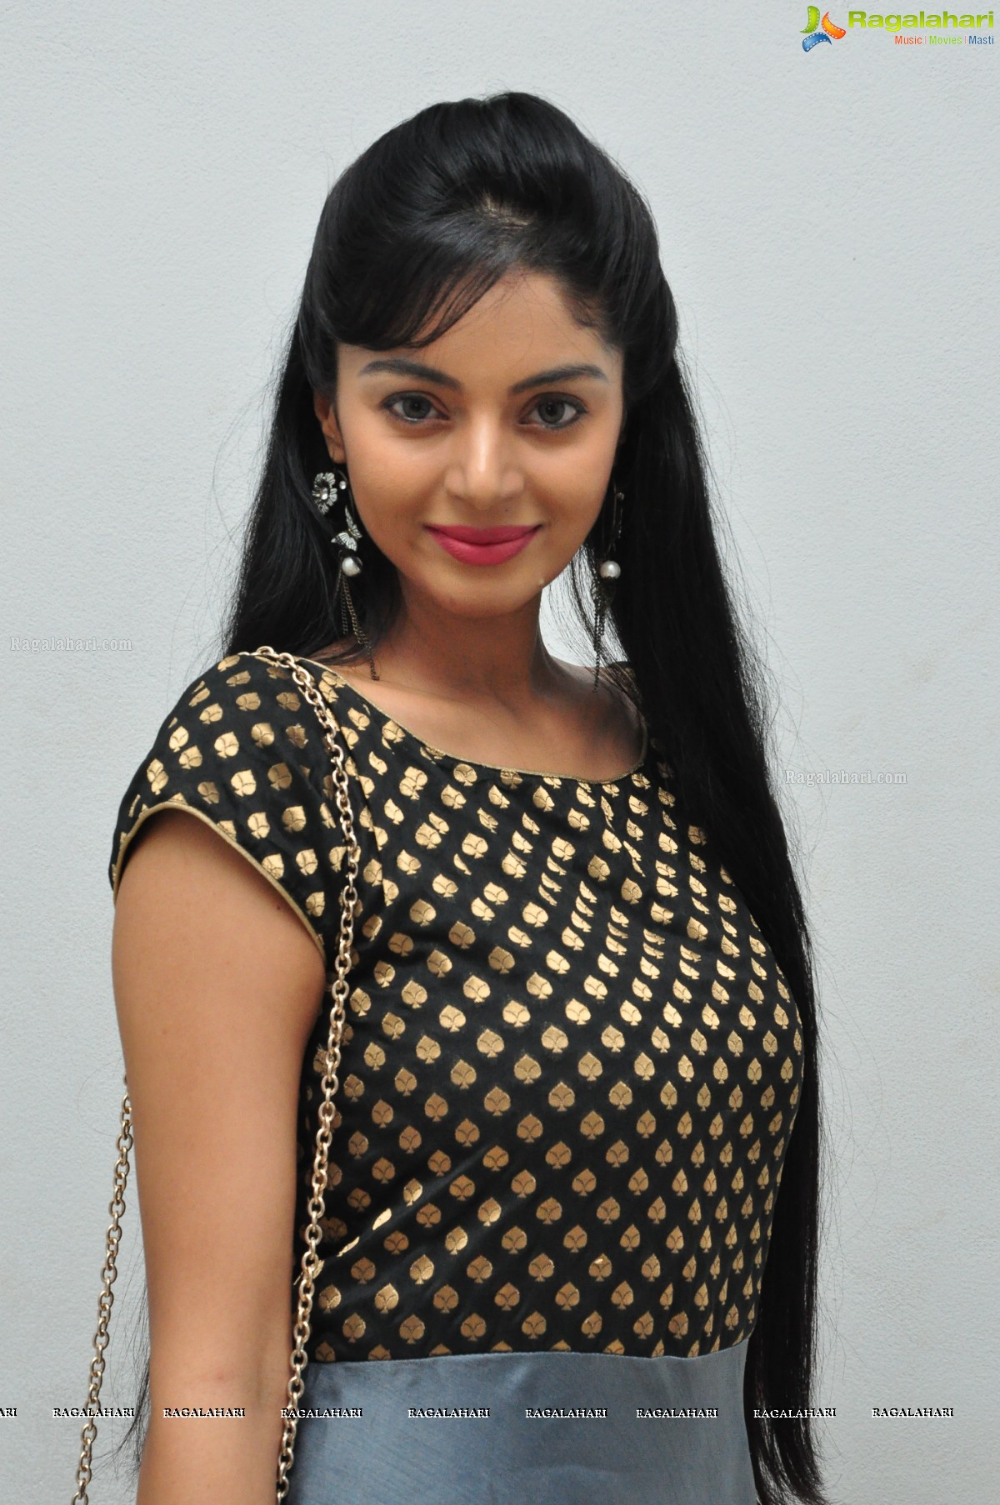 Sanam Shetty Image 14 | Telugu Actress Images,Images, Photos, Pictures, Hd Wallpapers